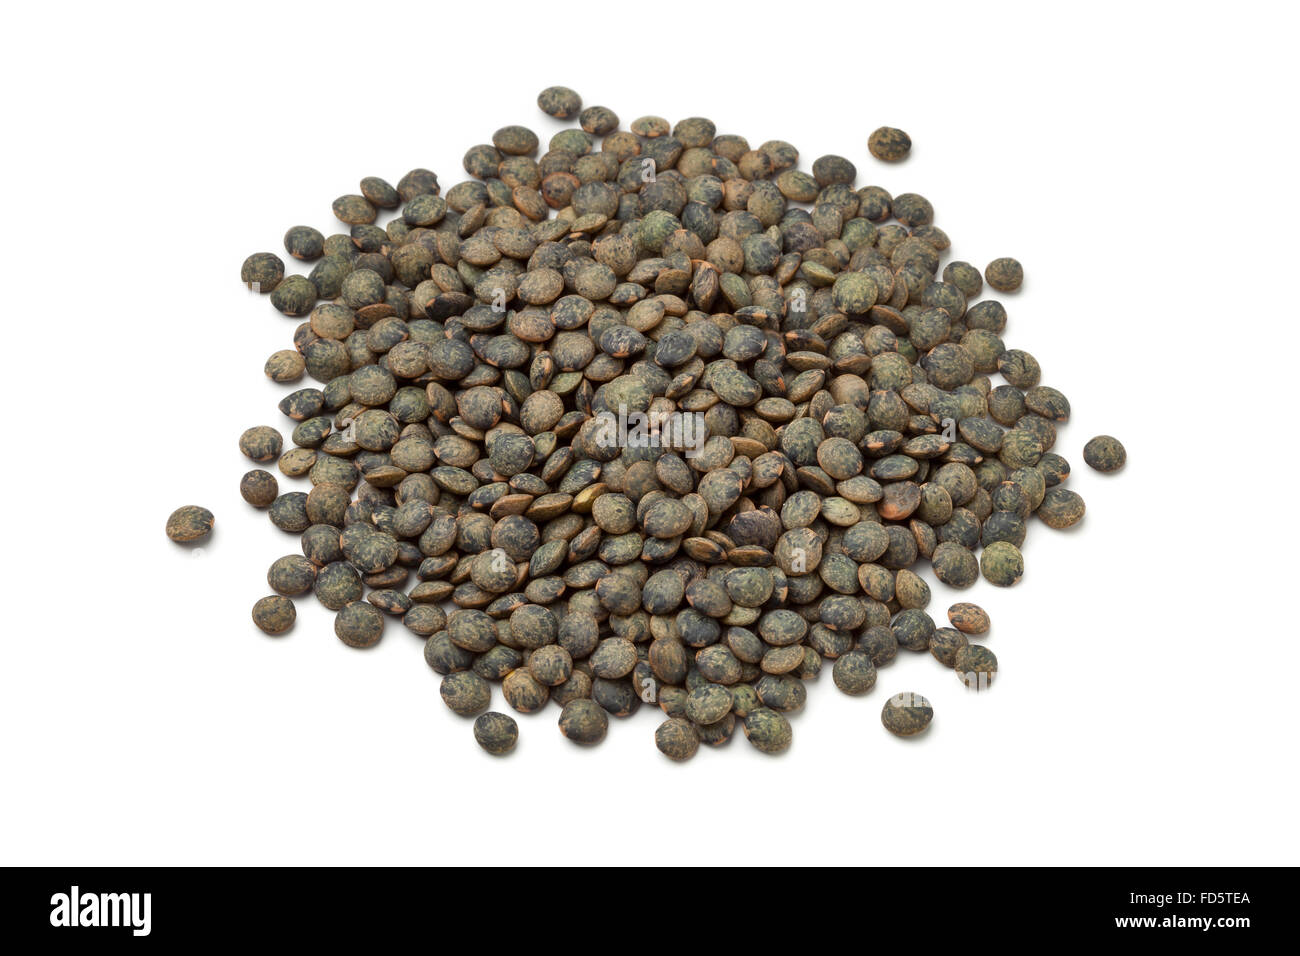 Heap of dried du Puy lentils on white background - Stock Image